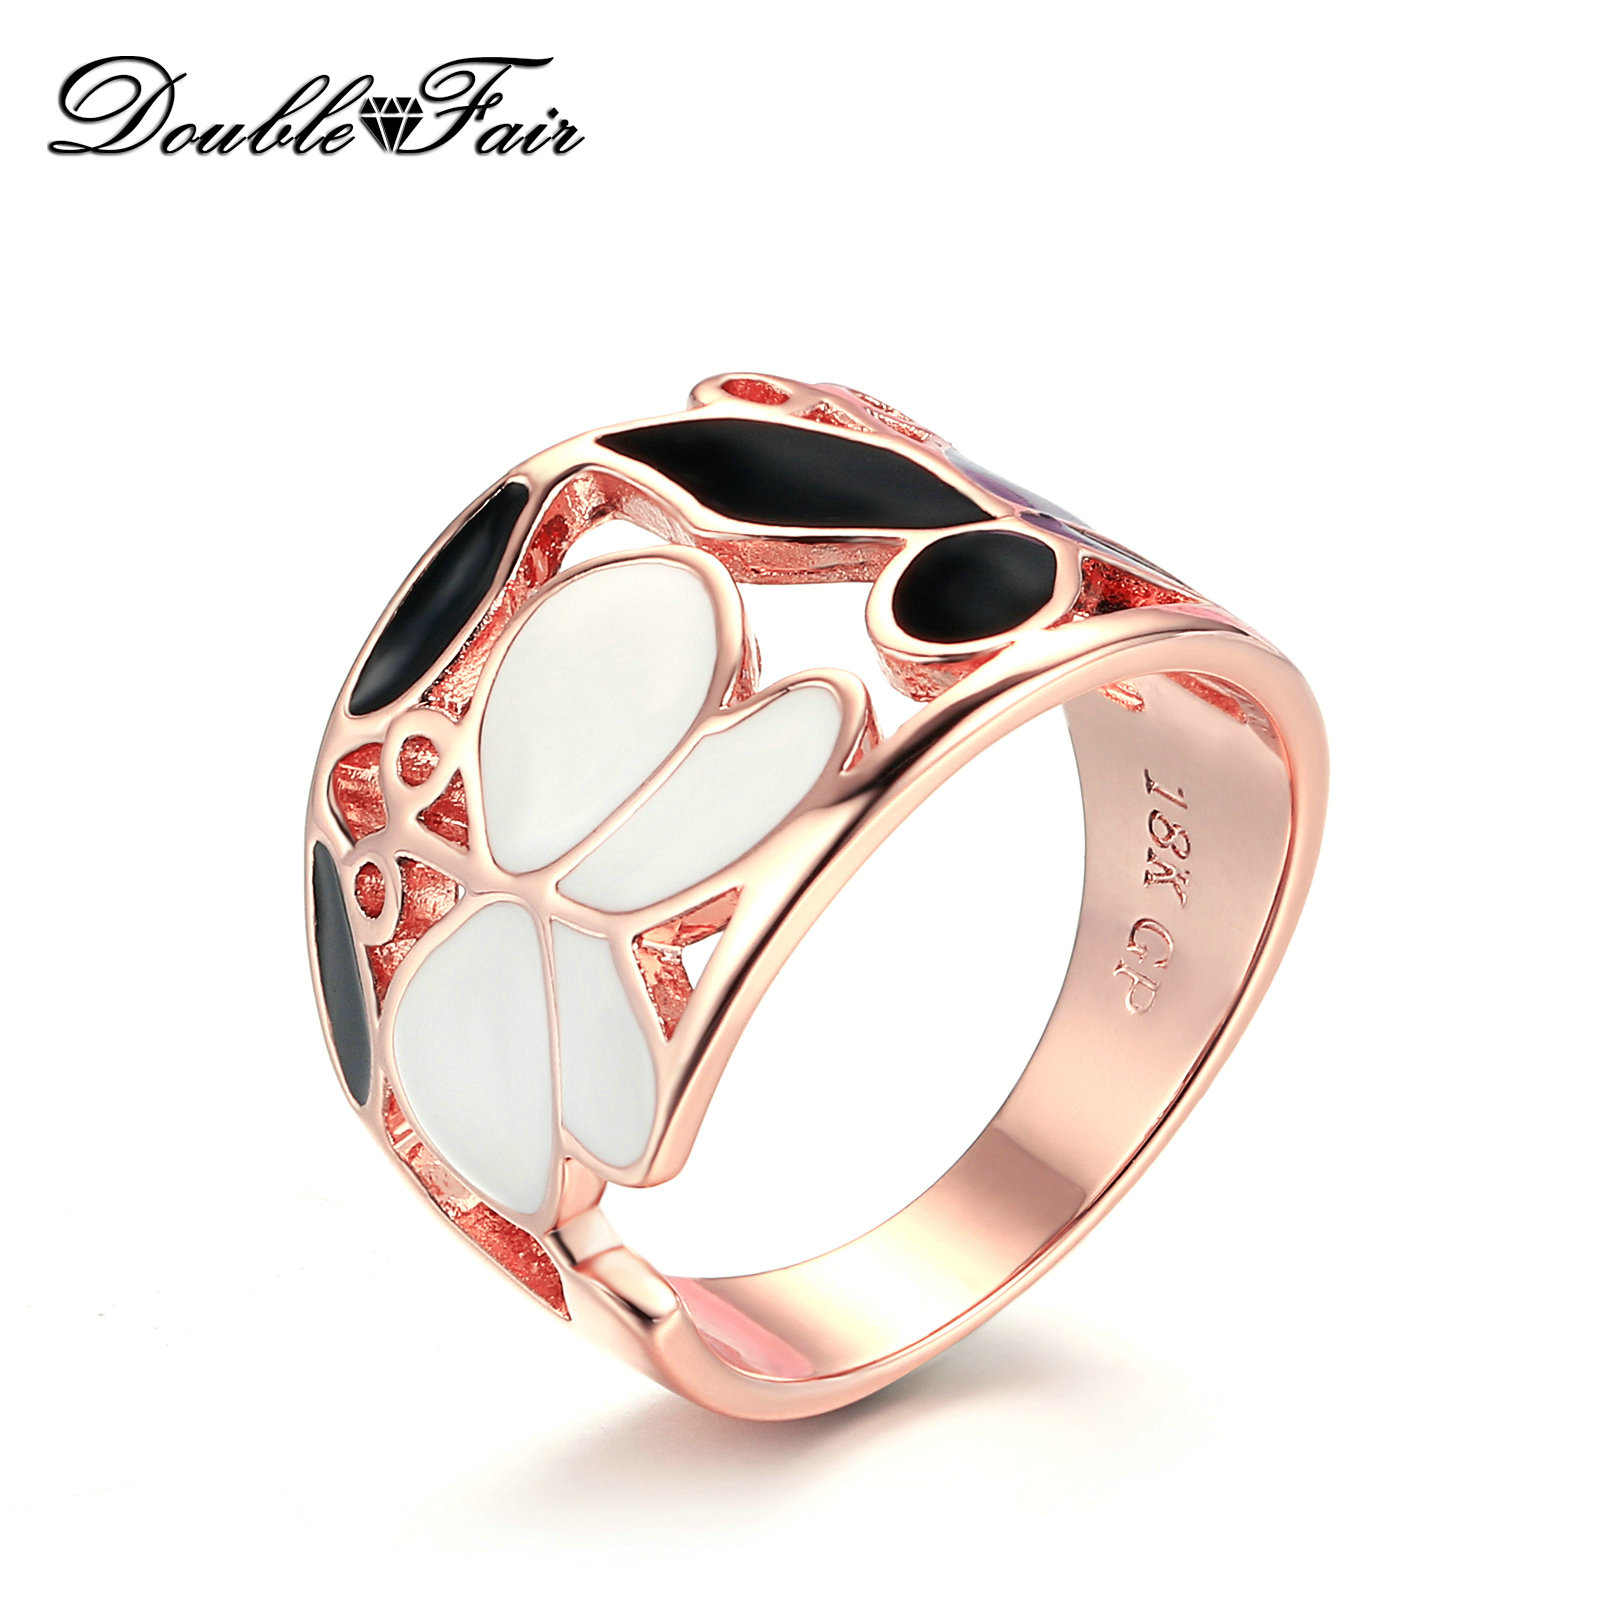 CZ Stone Ring Jewelry Fashion Rose Gold Color Leaf Crystal Wedding Rings for Wom